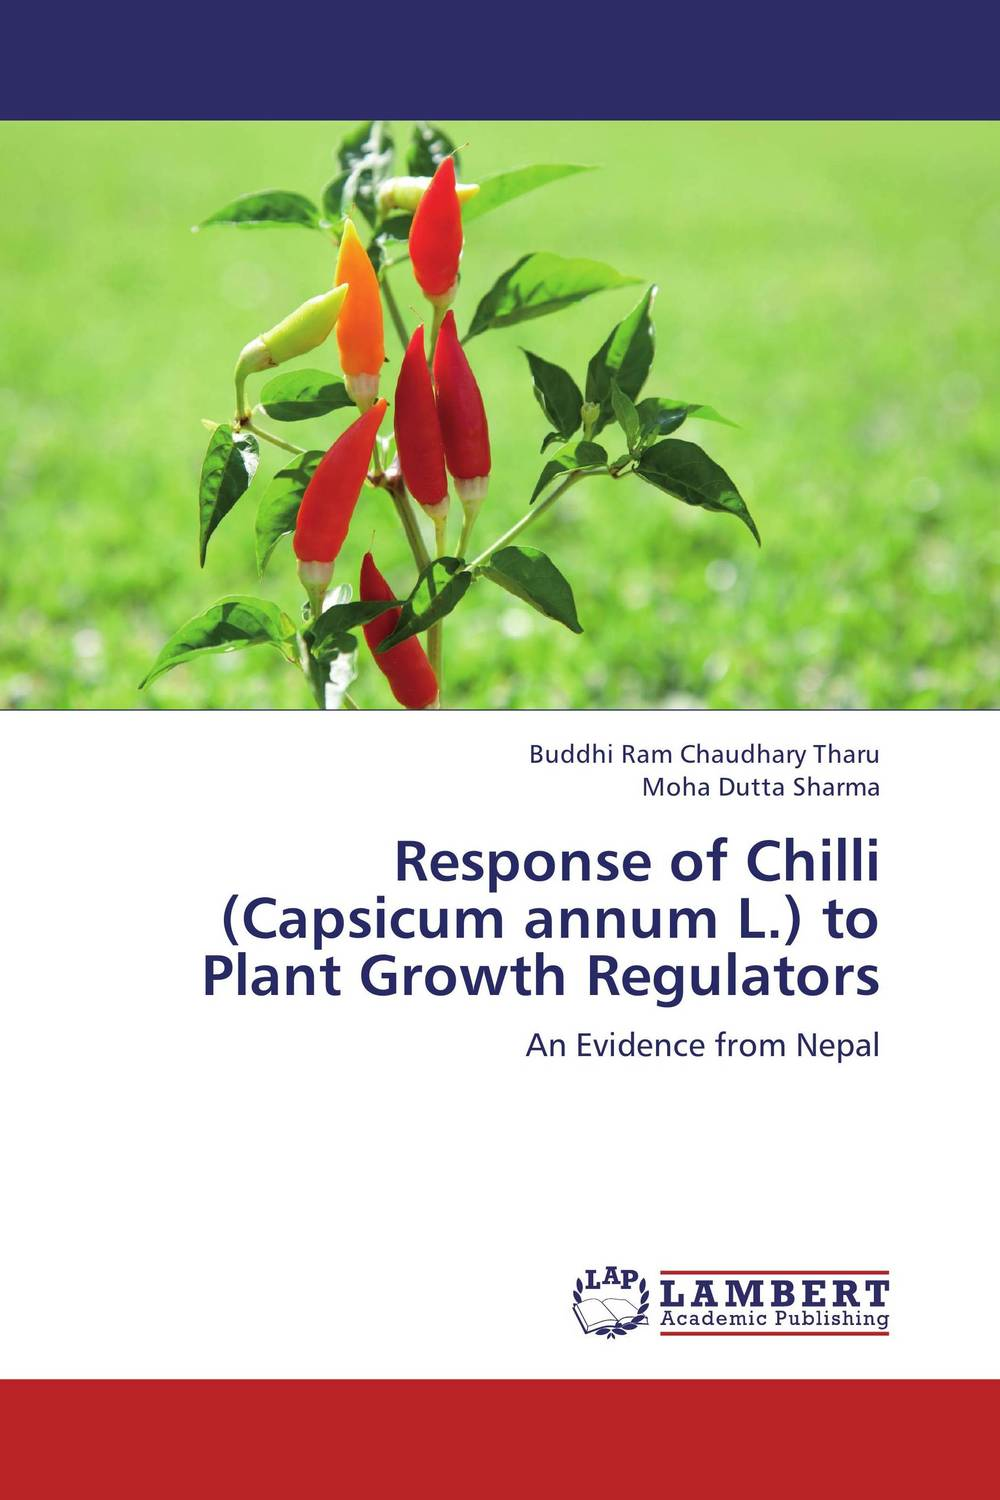 Response of Chilli (Capsicum annum L.) to Plant Growth Regulators куртка mavi 110164 24417